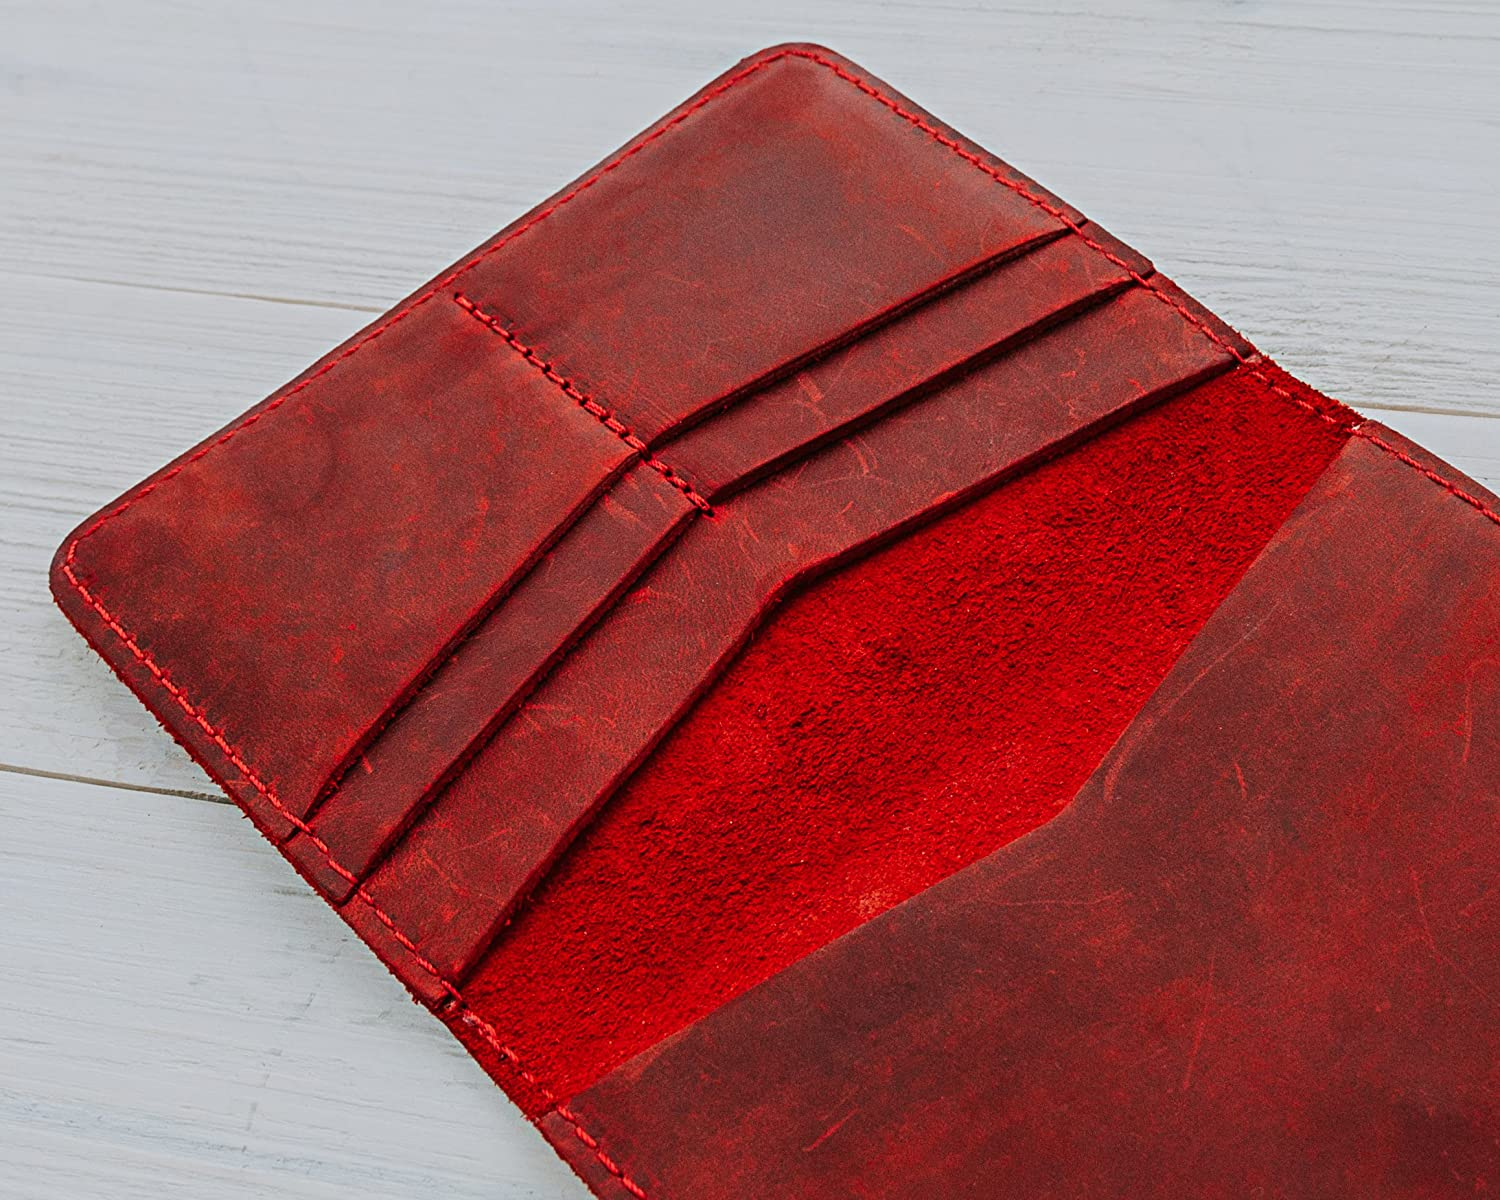 Rustic Passport Cover Distressed Leather Travel Wallet Pegai Passport Wallet Pike Rose Red Handcrafted Soft Leather Passport Holder